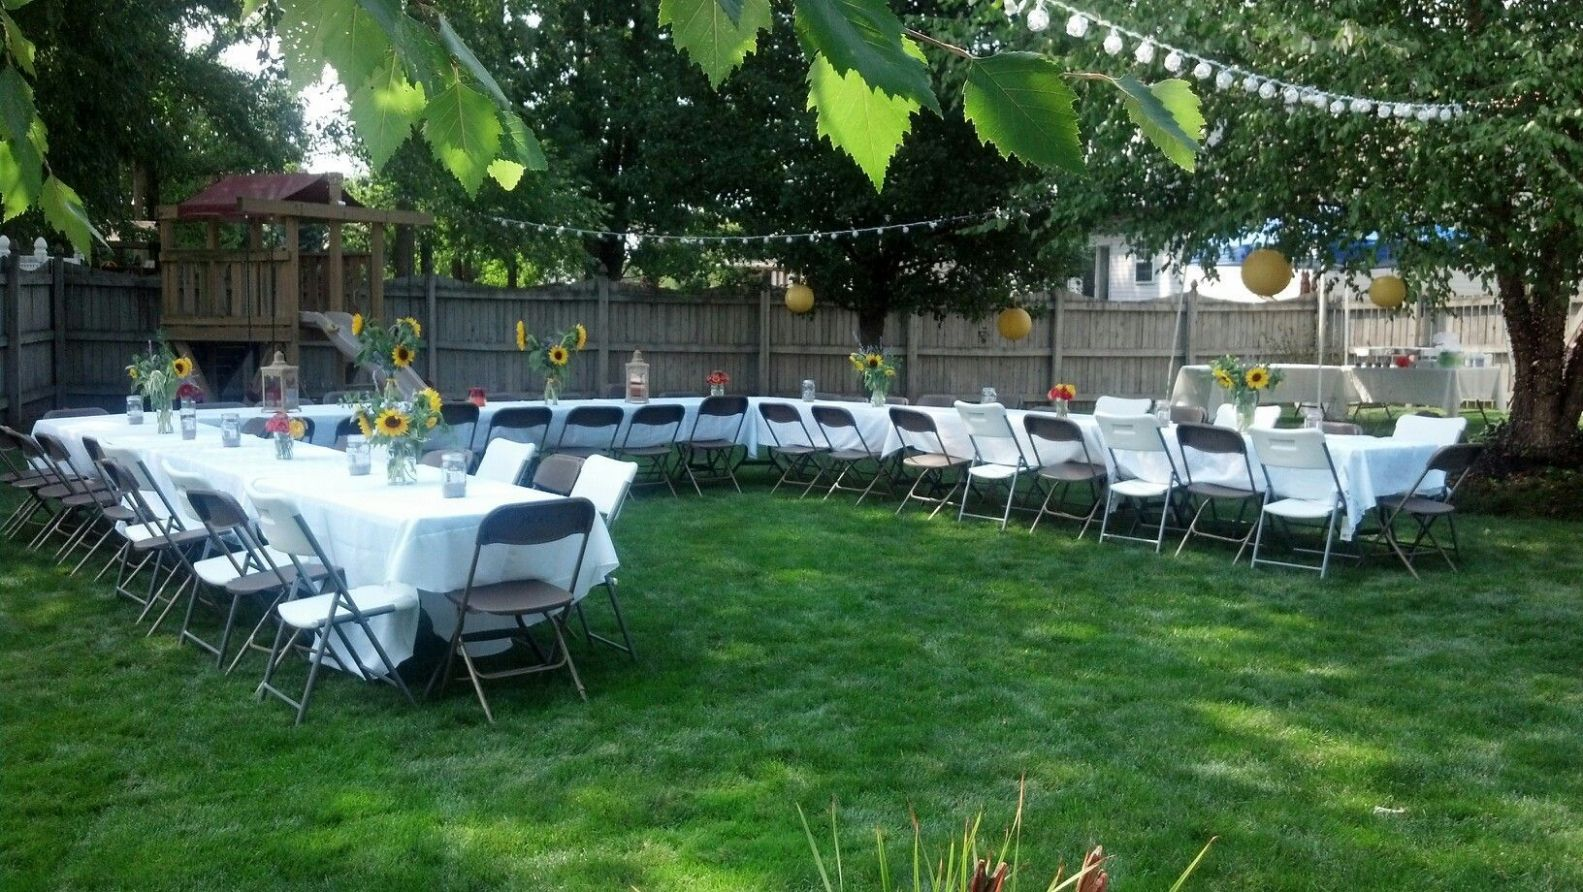 12 Some of the Coolest Designs of How to Make Graduation Backyard ...